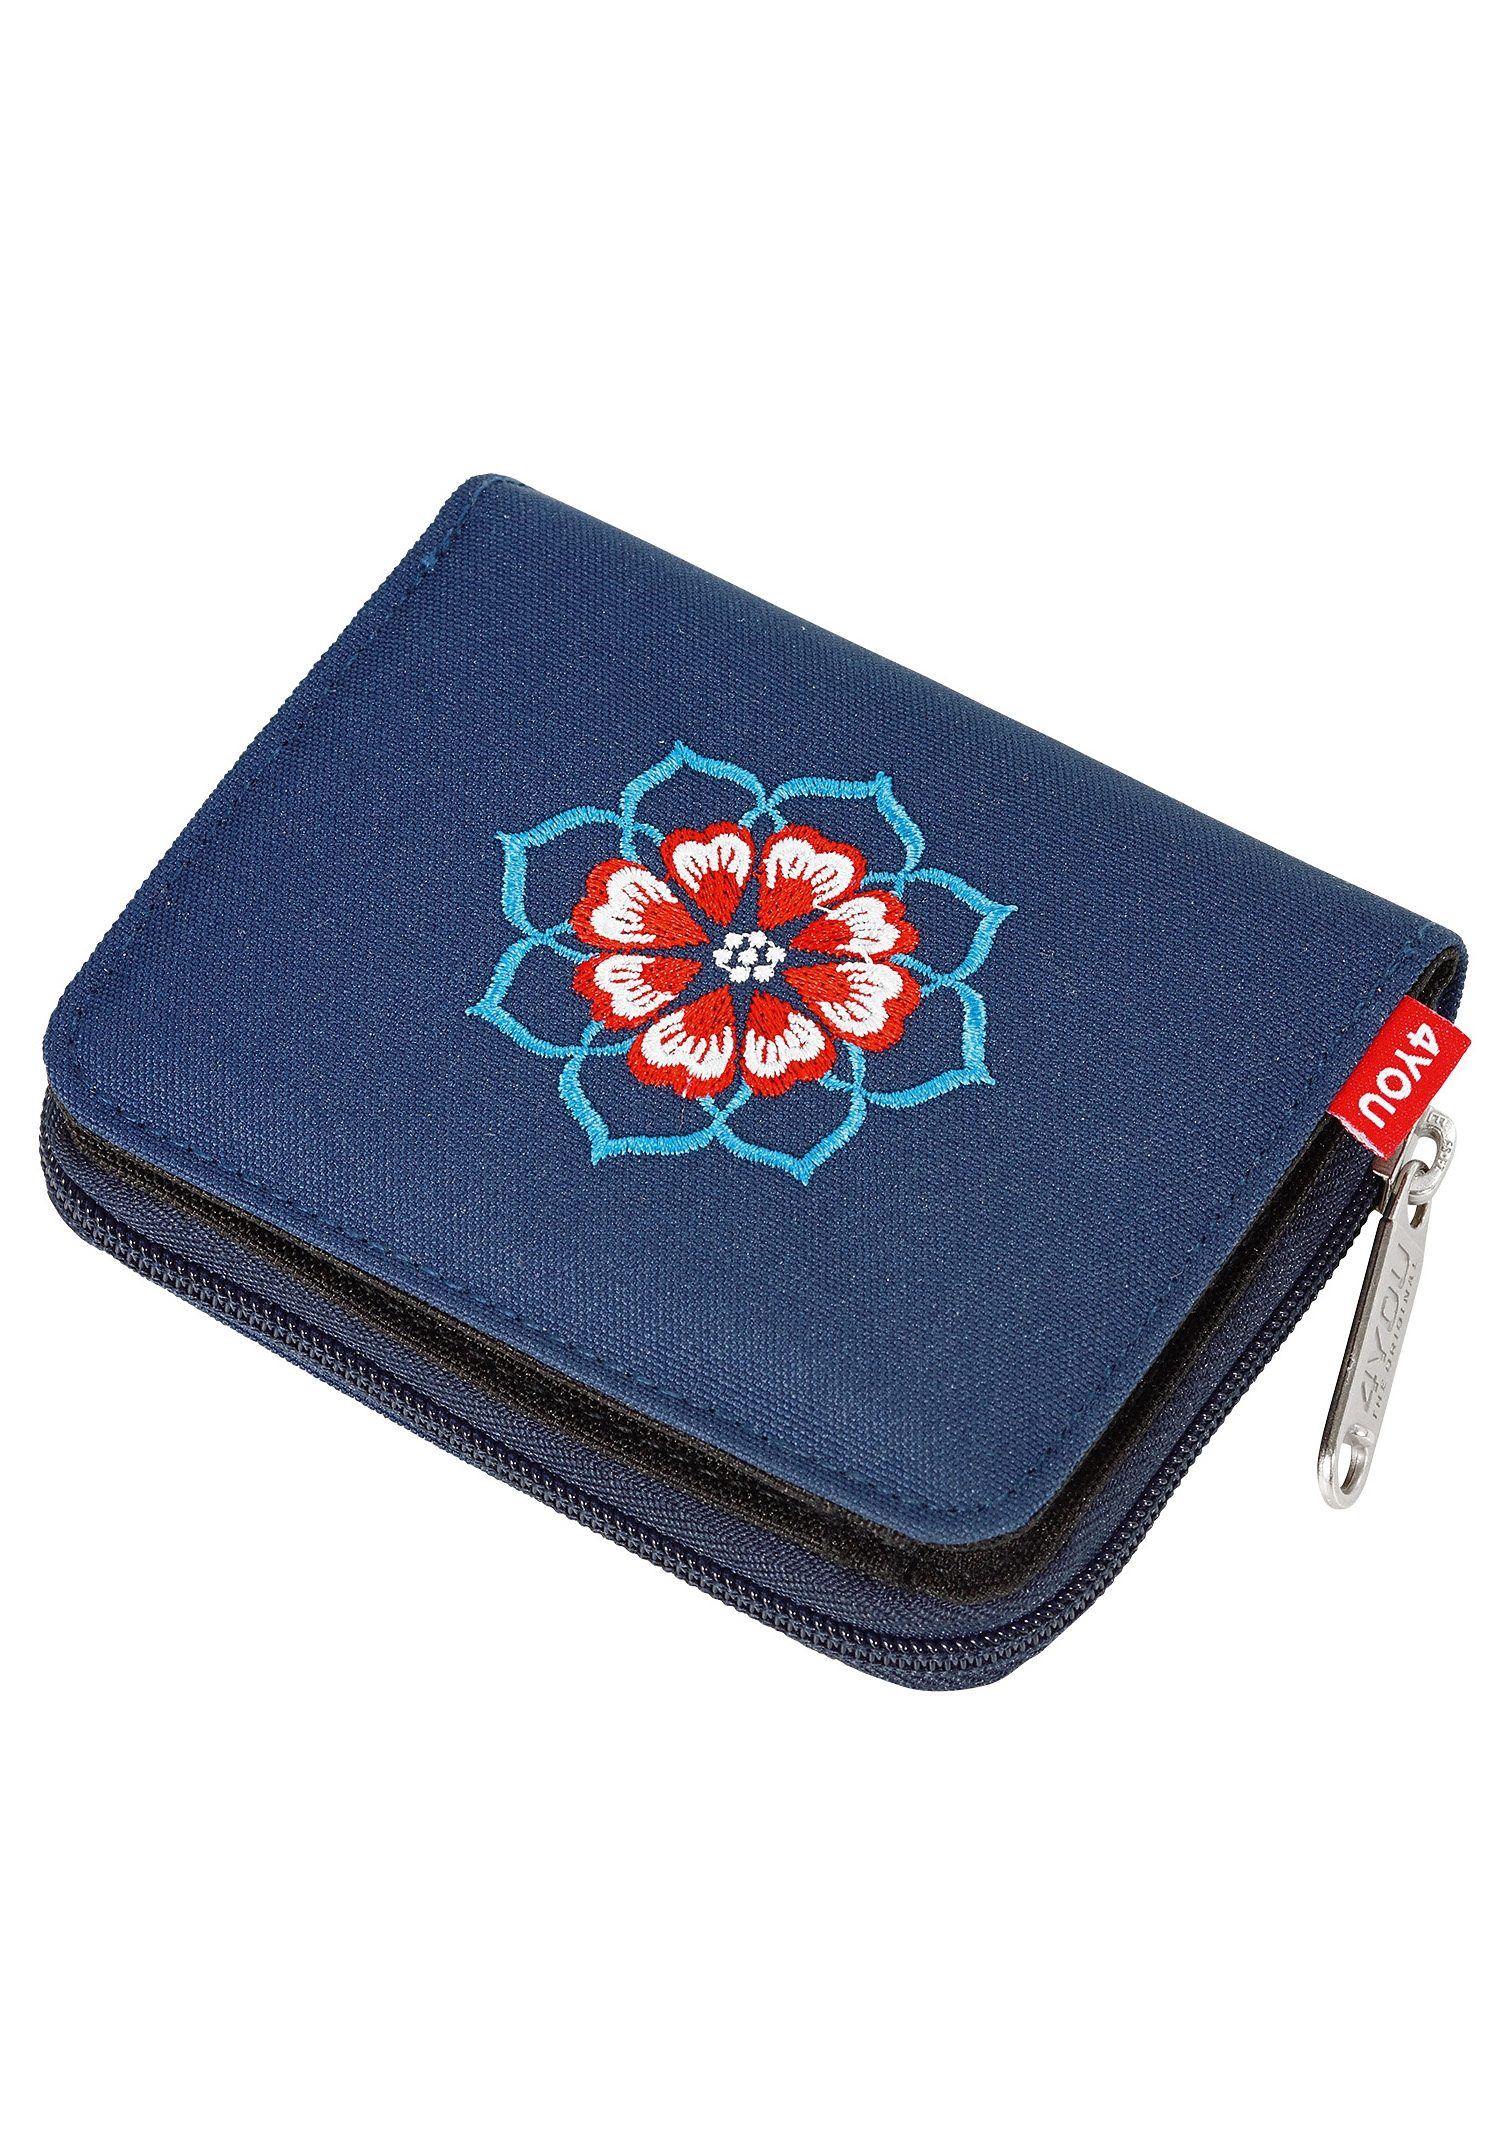 4YOU Geldbörse, »Zipper Wallet - Peacock Vintage«